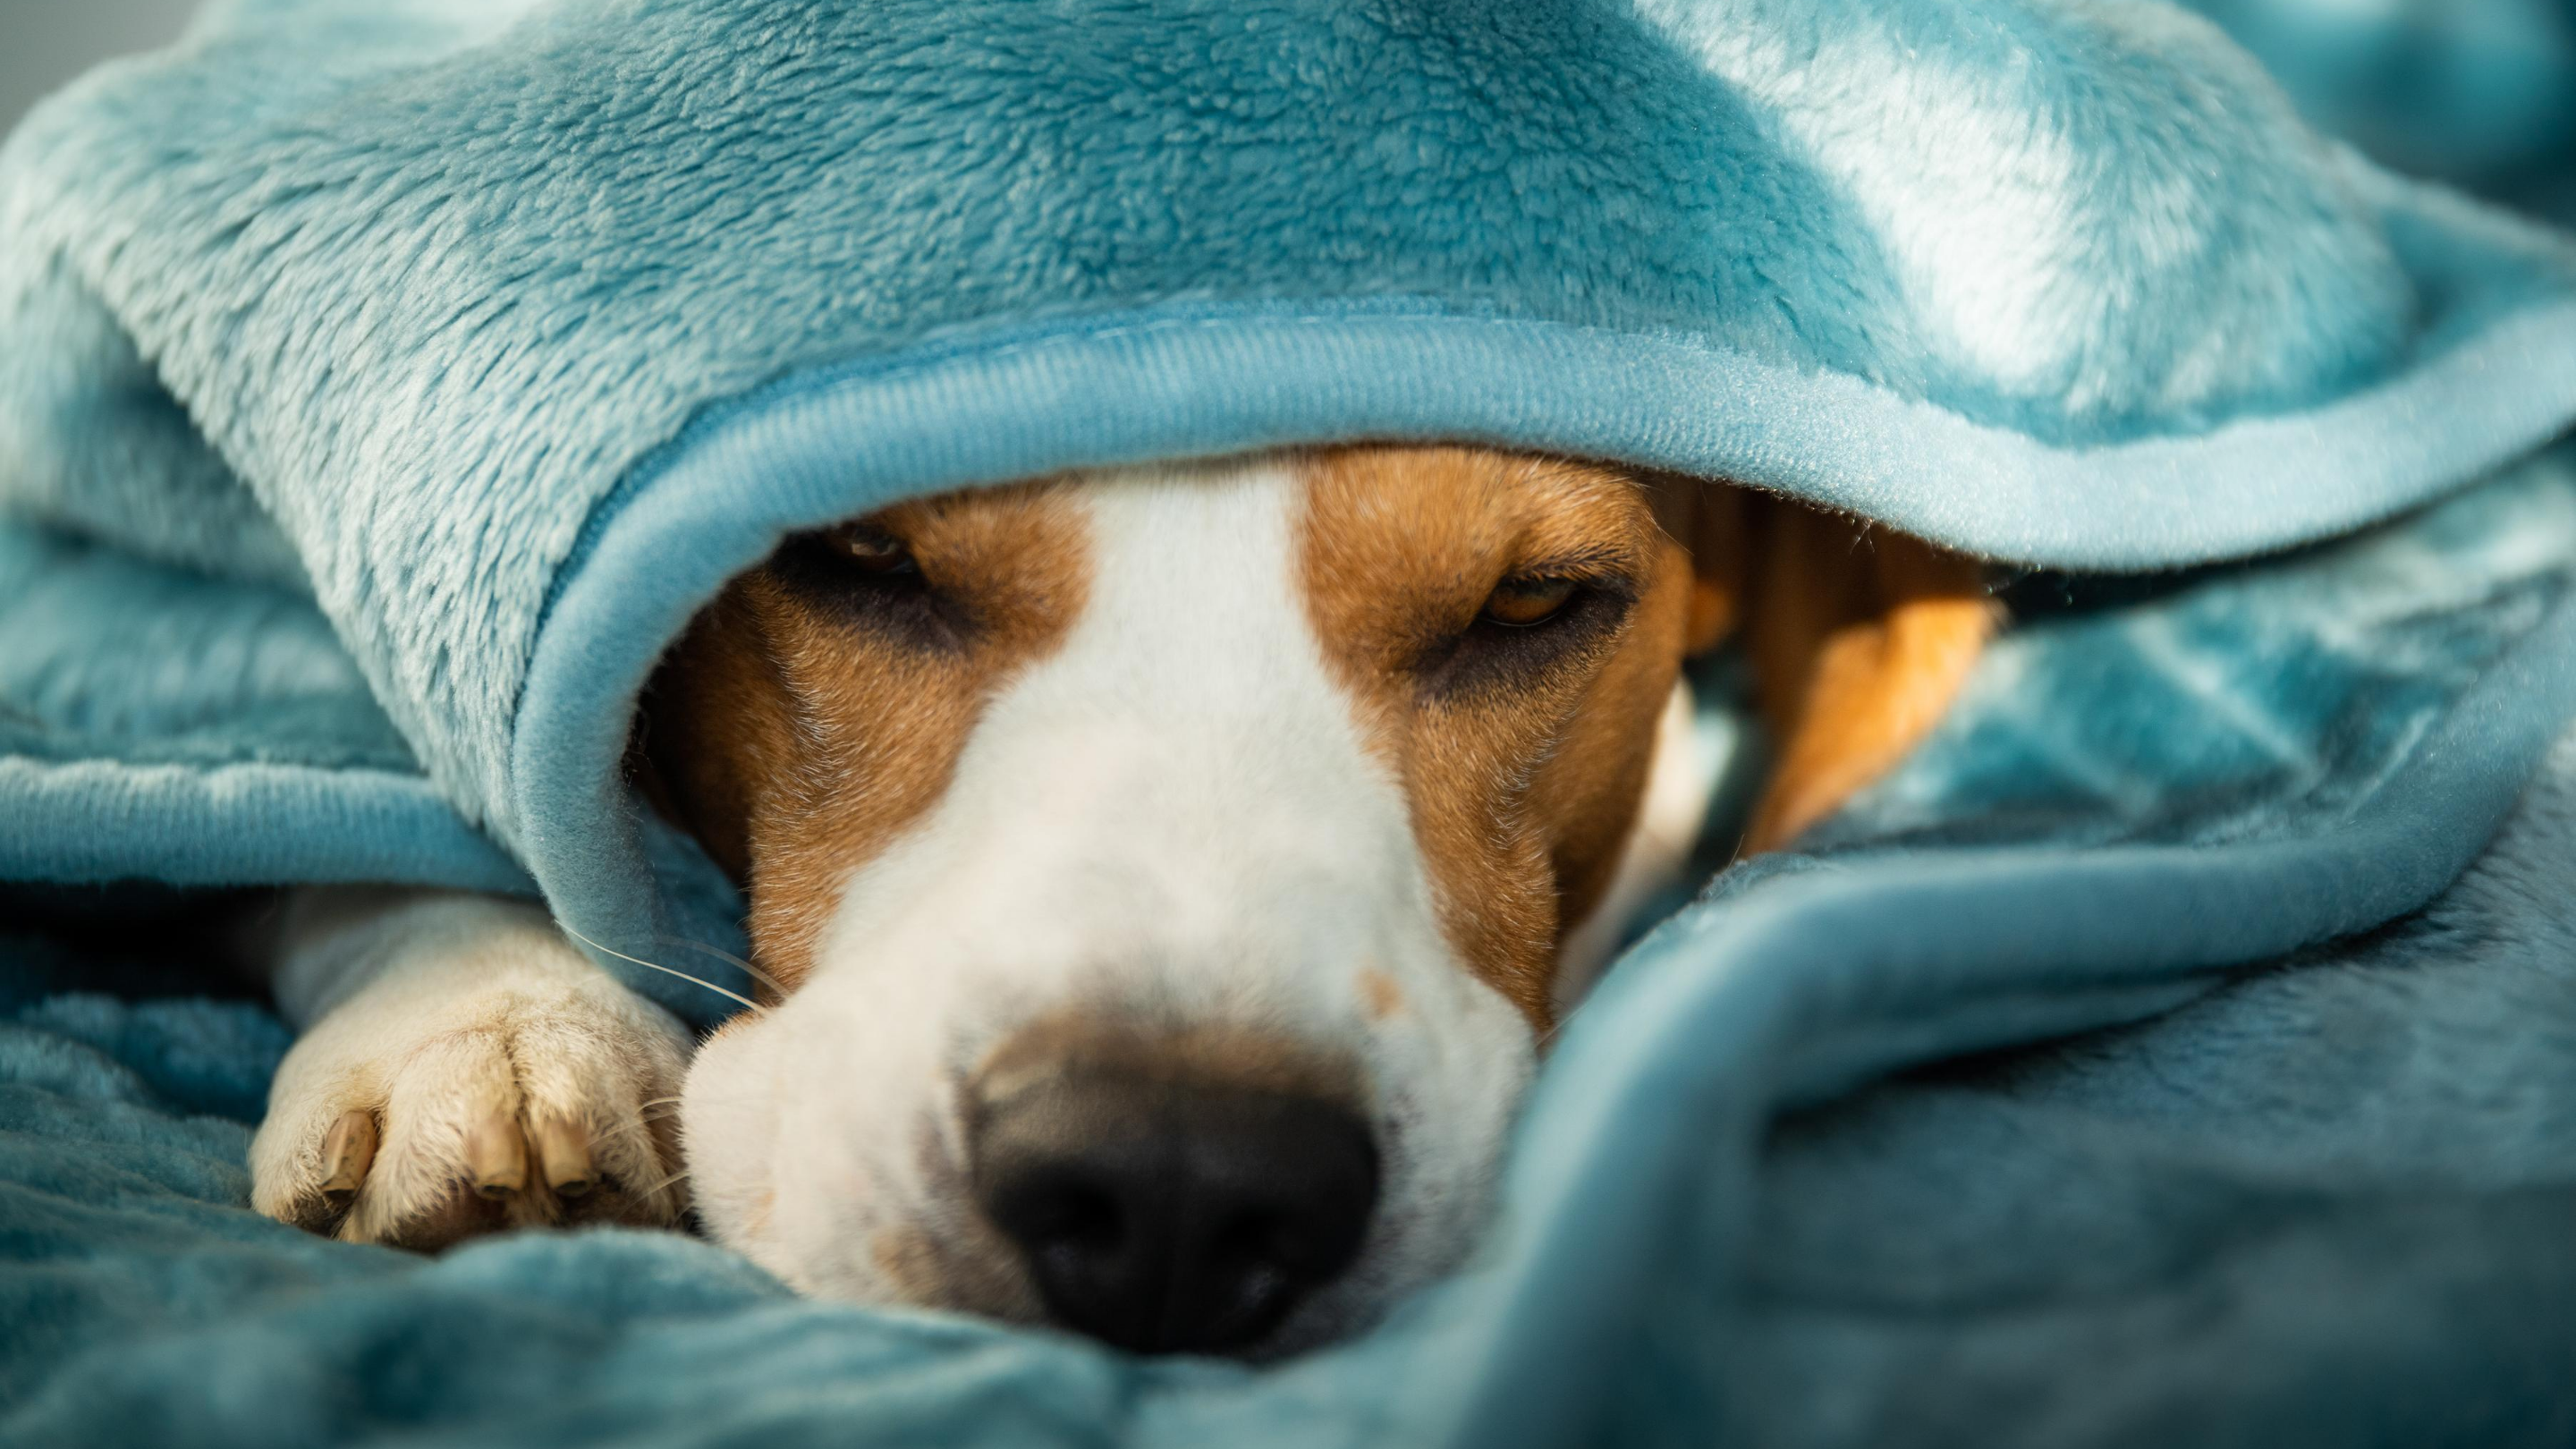 Snuggled in blankets, a beagle pokes his nose out